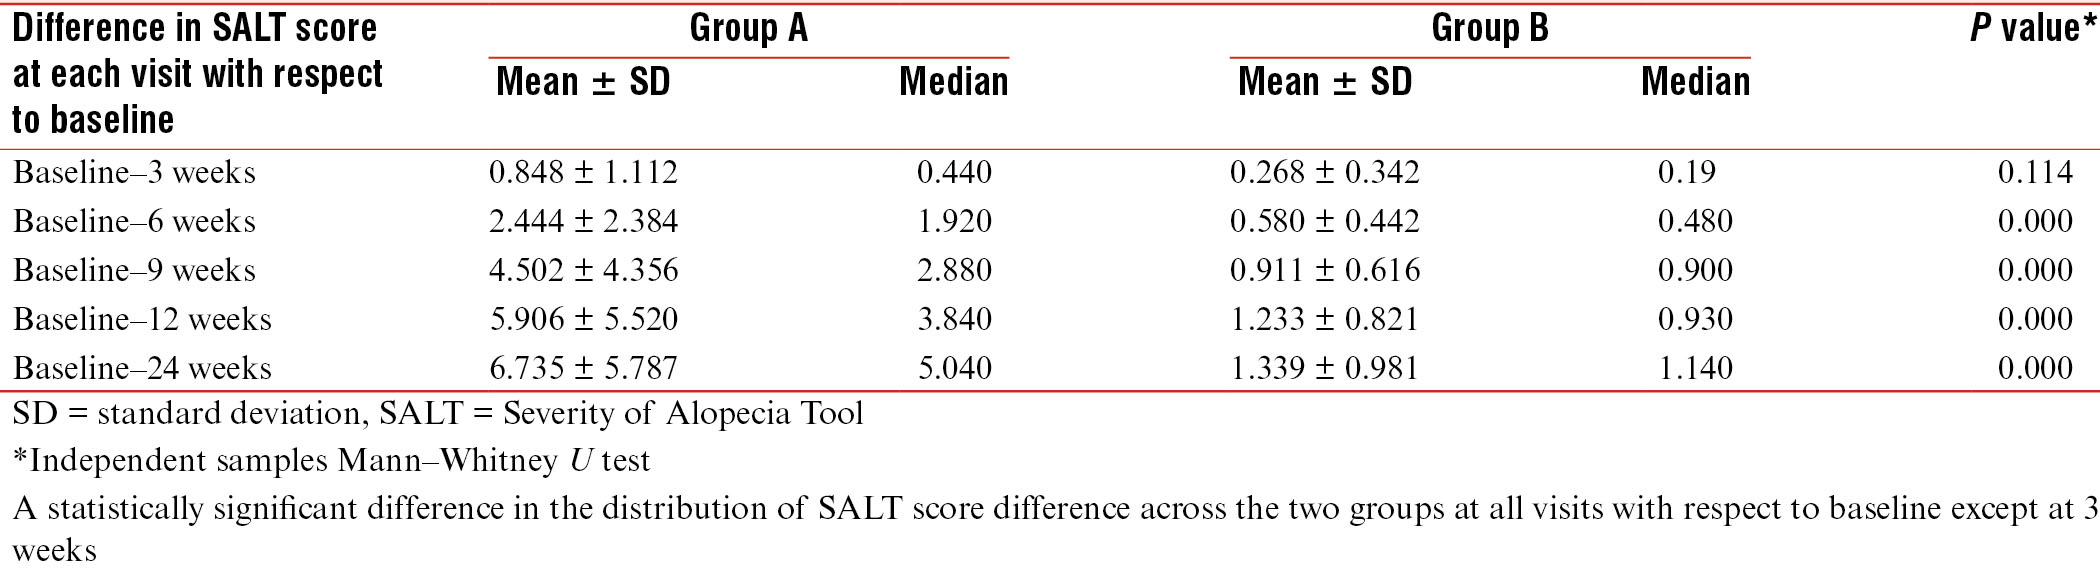 Table 10: Trends in mean SALT score difference in Group A and B